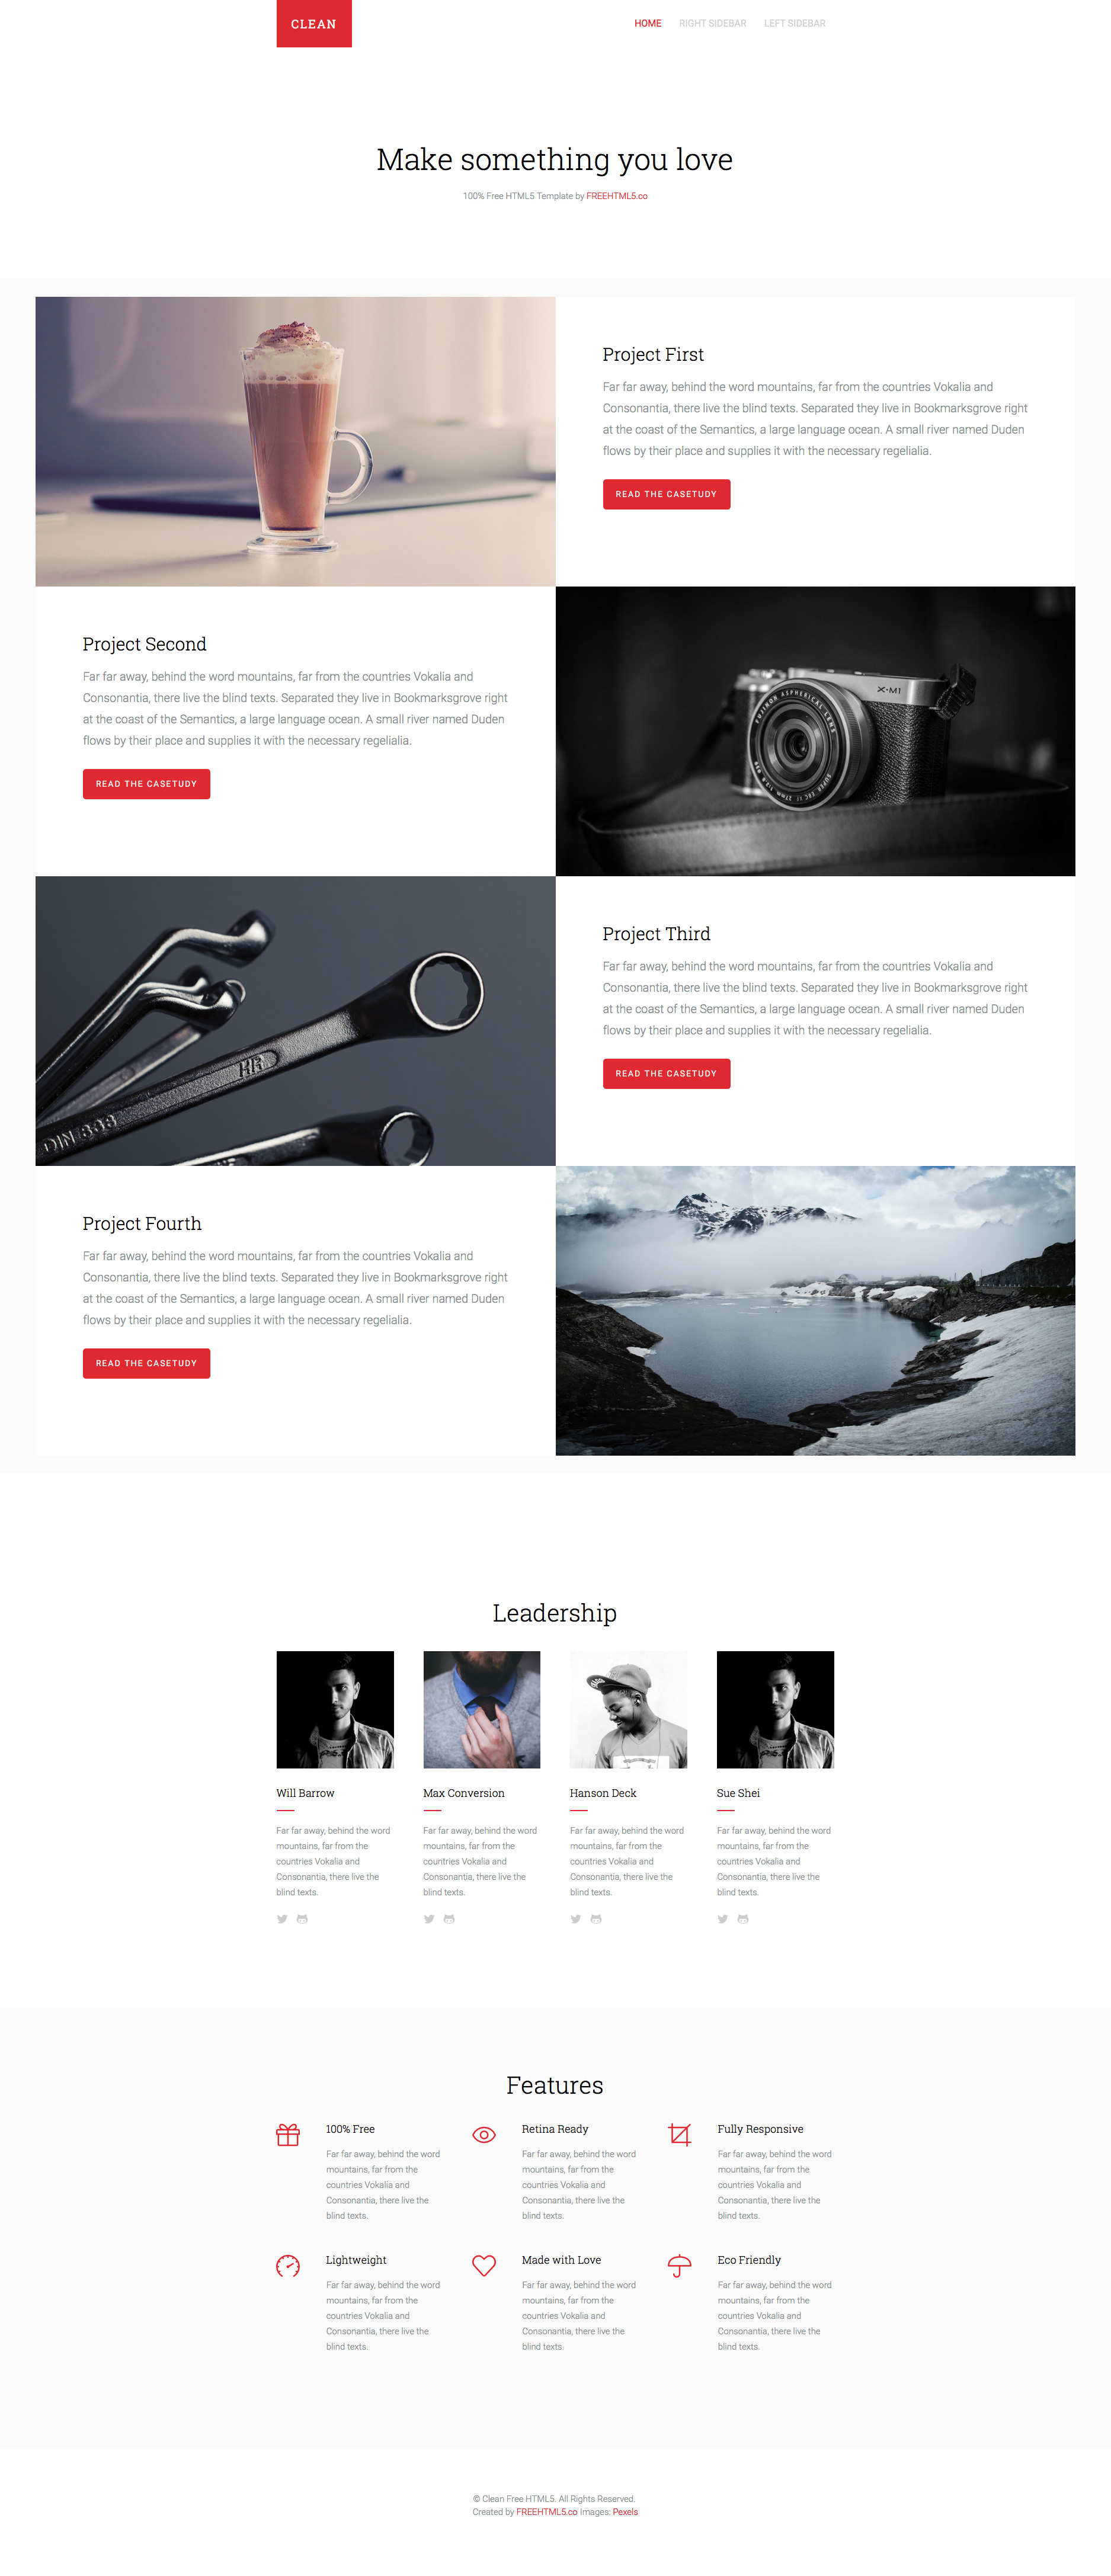 Clean is a minimal free responsive HTML5 multi-purpose website template which comes with smooth and sleek animation upon scrolling. Clean is also fully responsive and a retina-ready template perfect for portfolio sites.